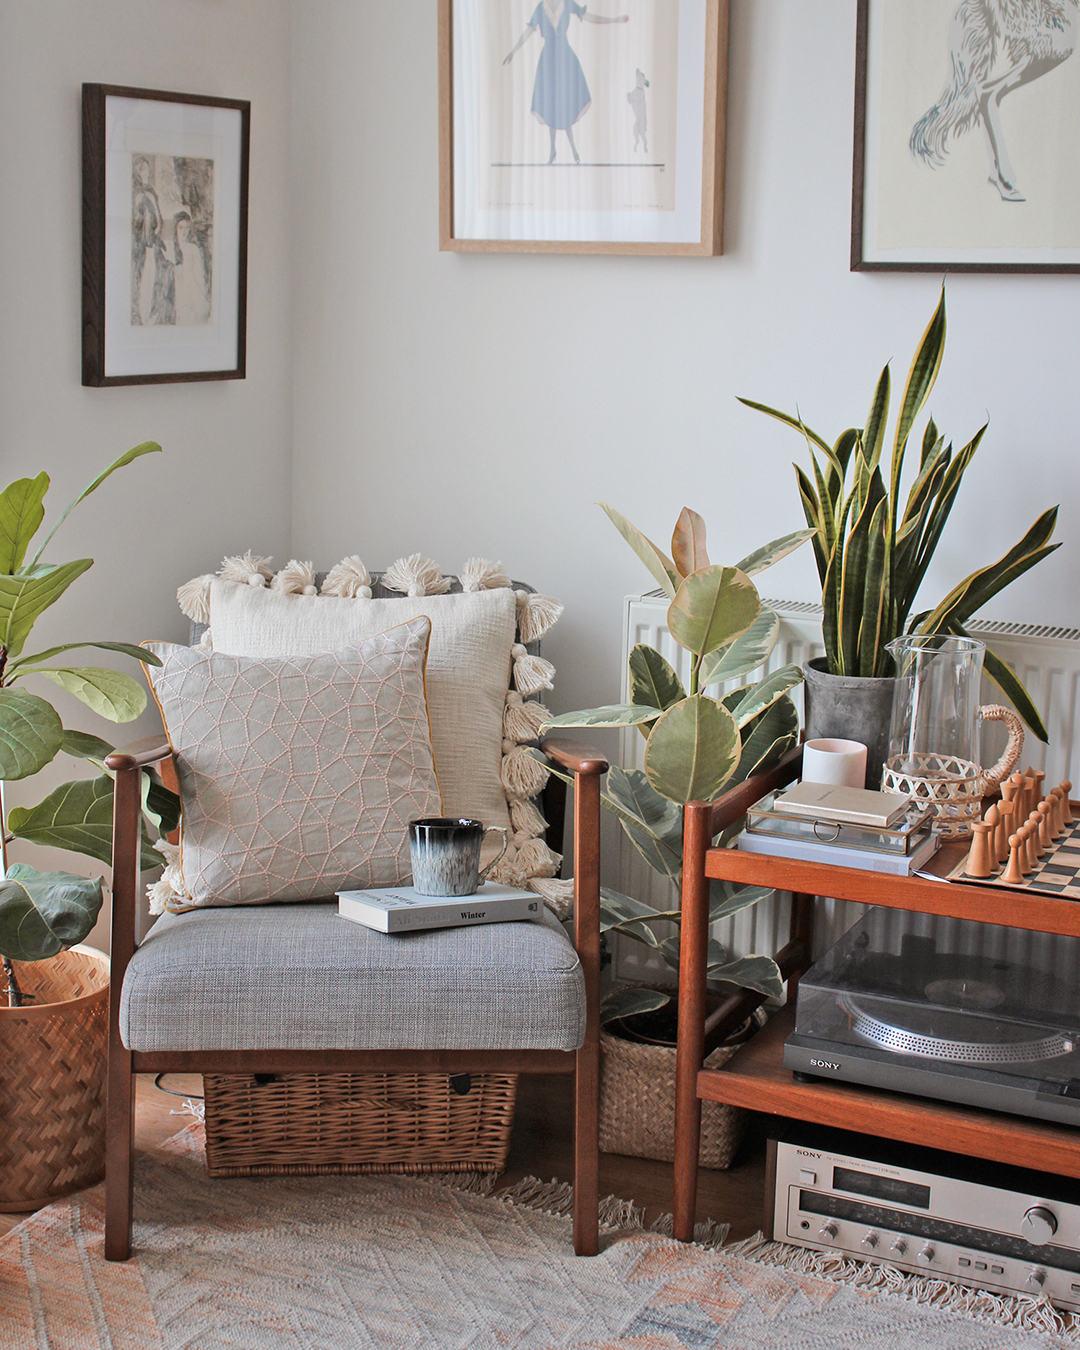 Nancy Straughan Living Room - curating your visual style